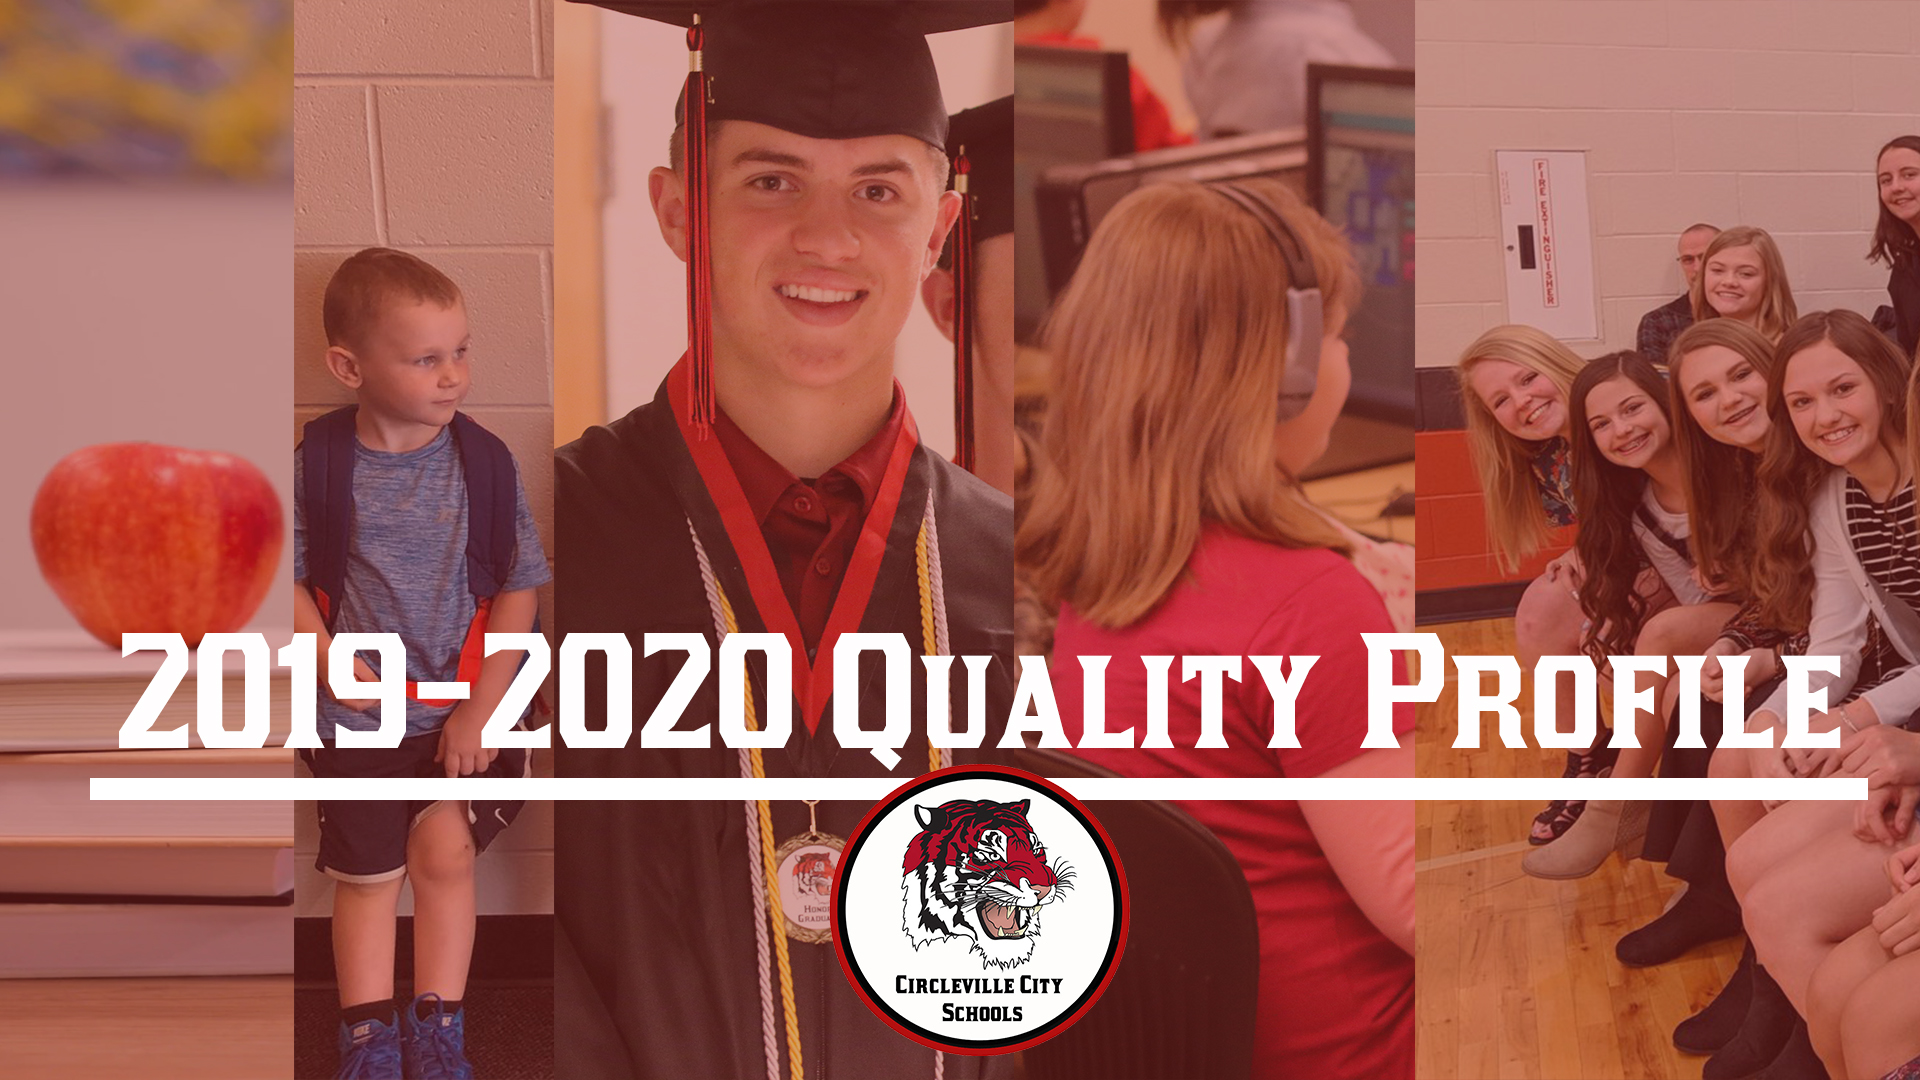 2019-2020 quality profile released